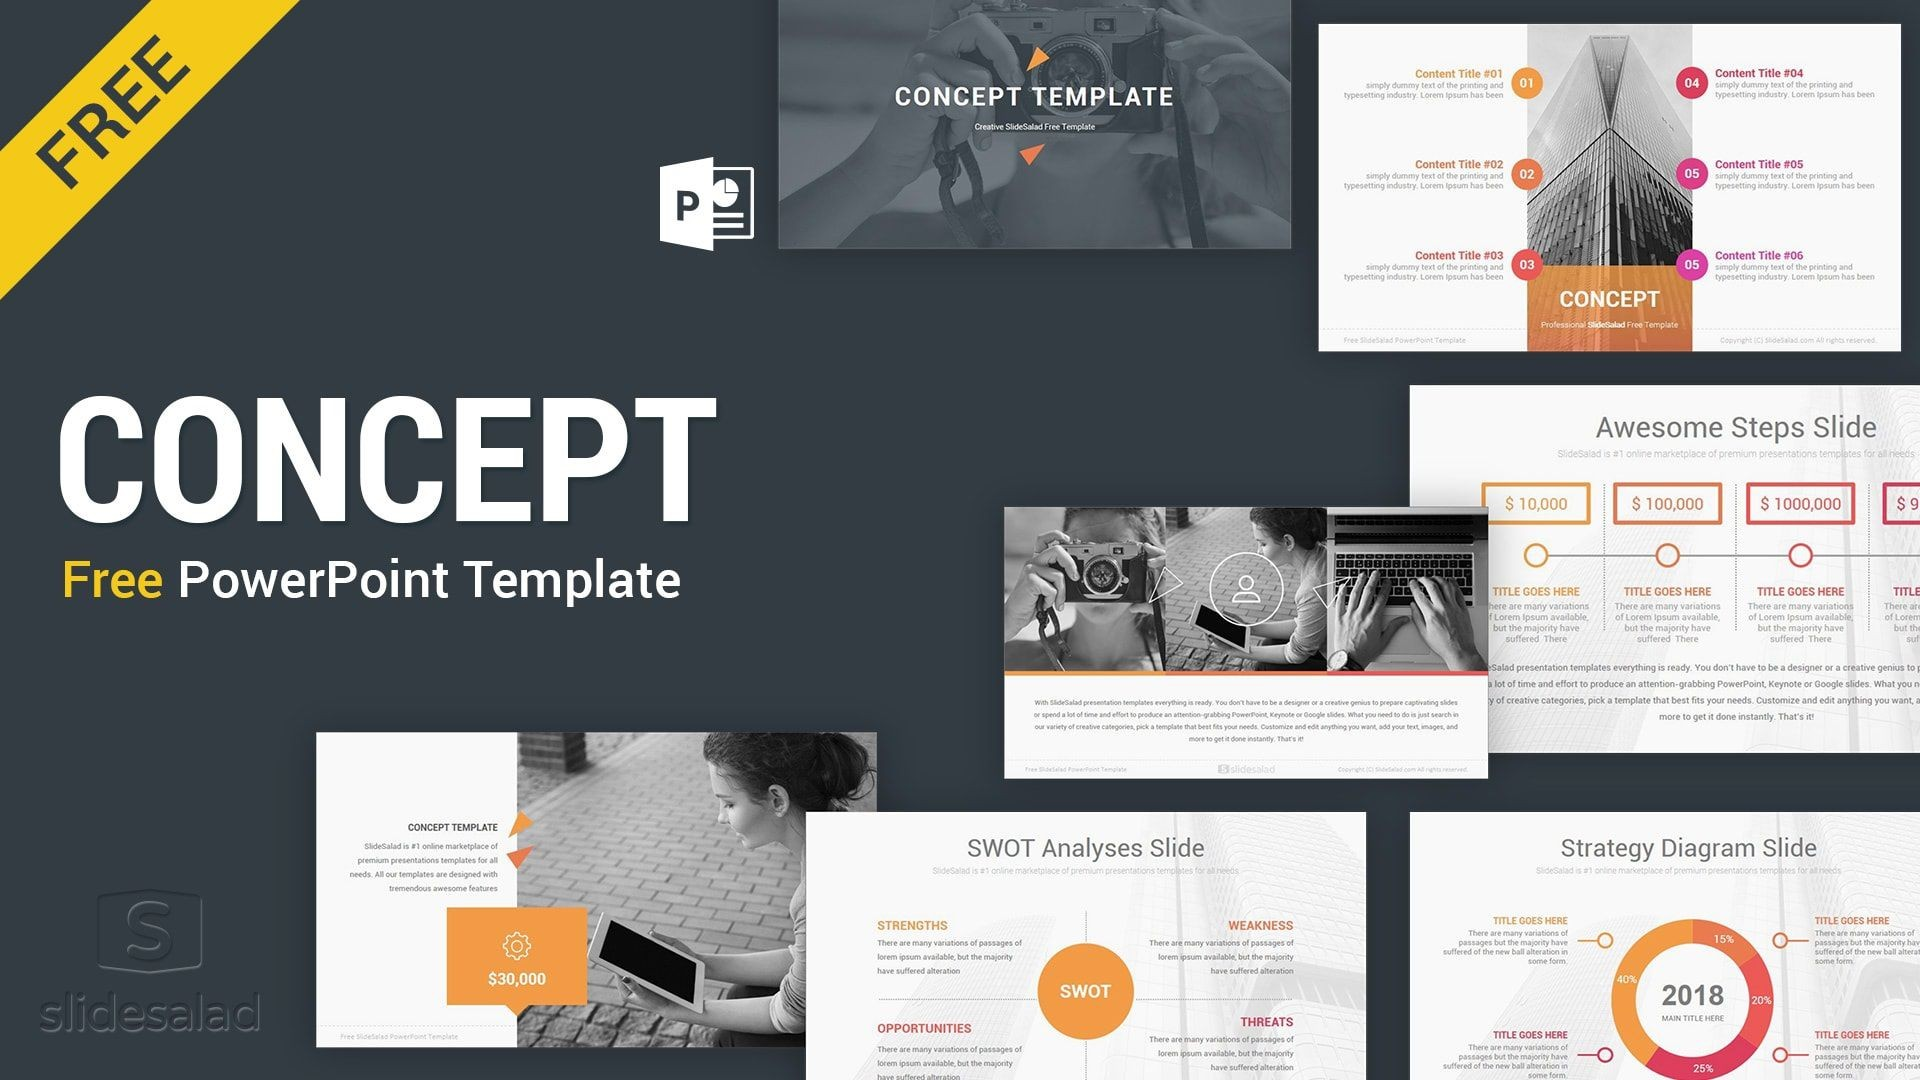 003 Best Ppt Template For Seminar Presentation Free Download Picture 1920